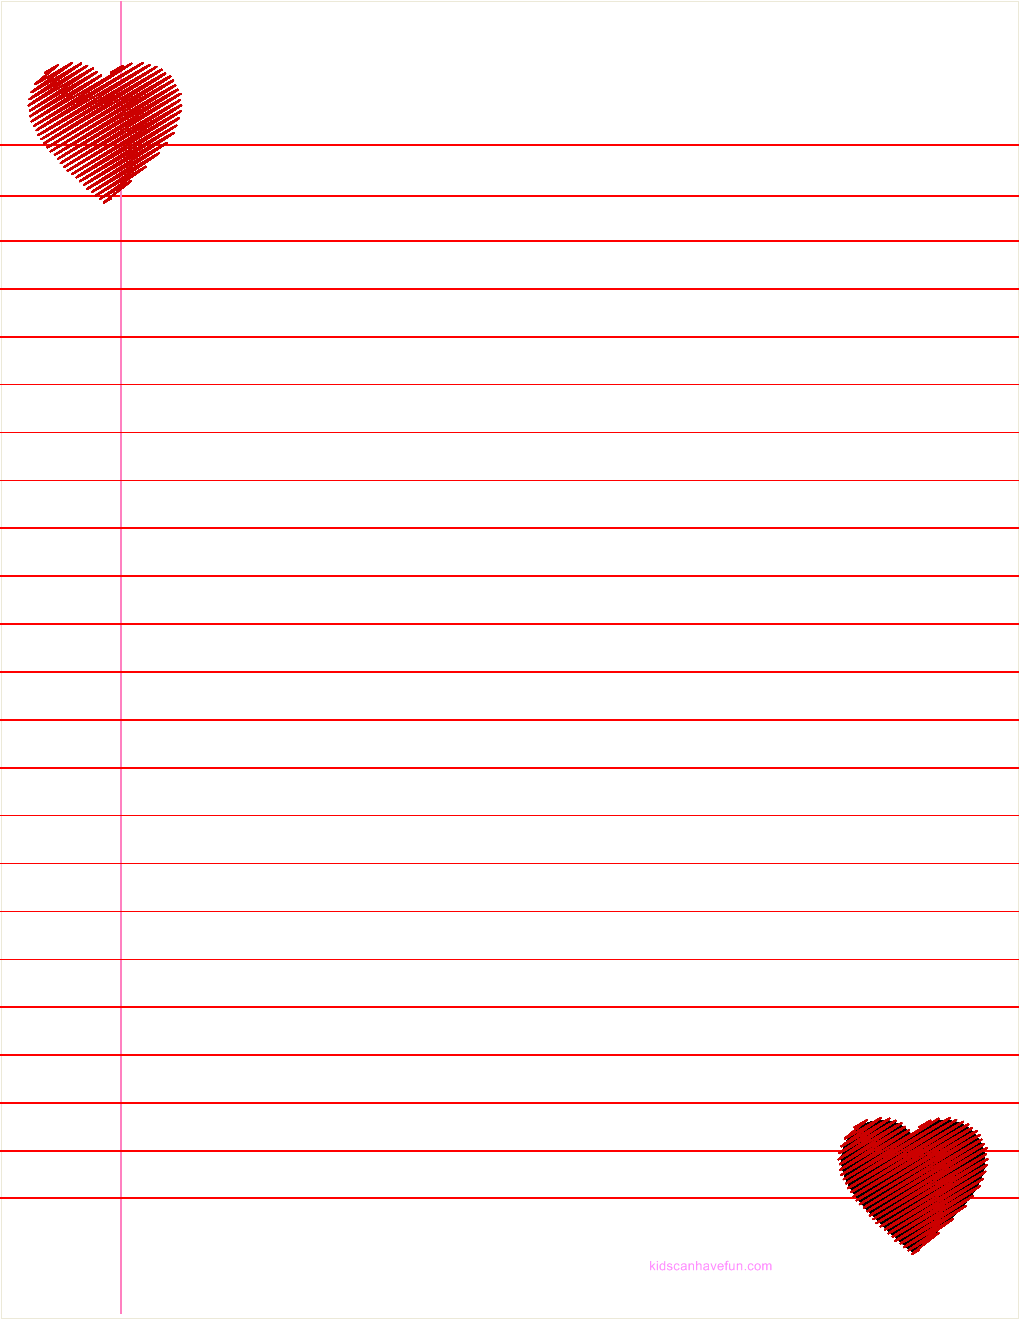 7 Images of Valentine's Day Writing Paper Printable